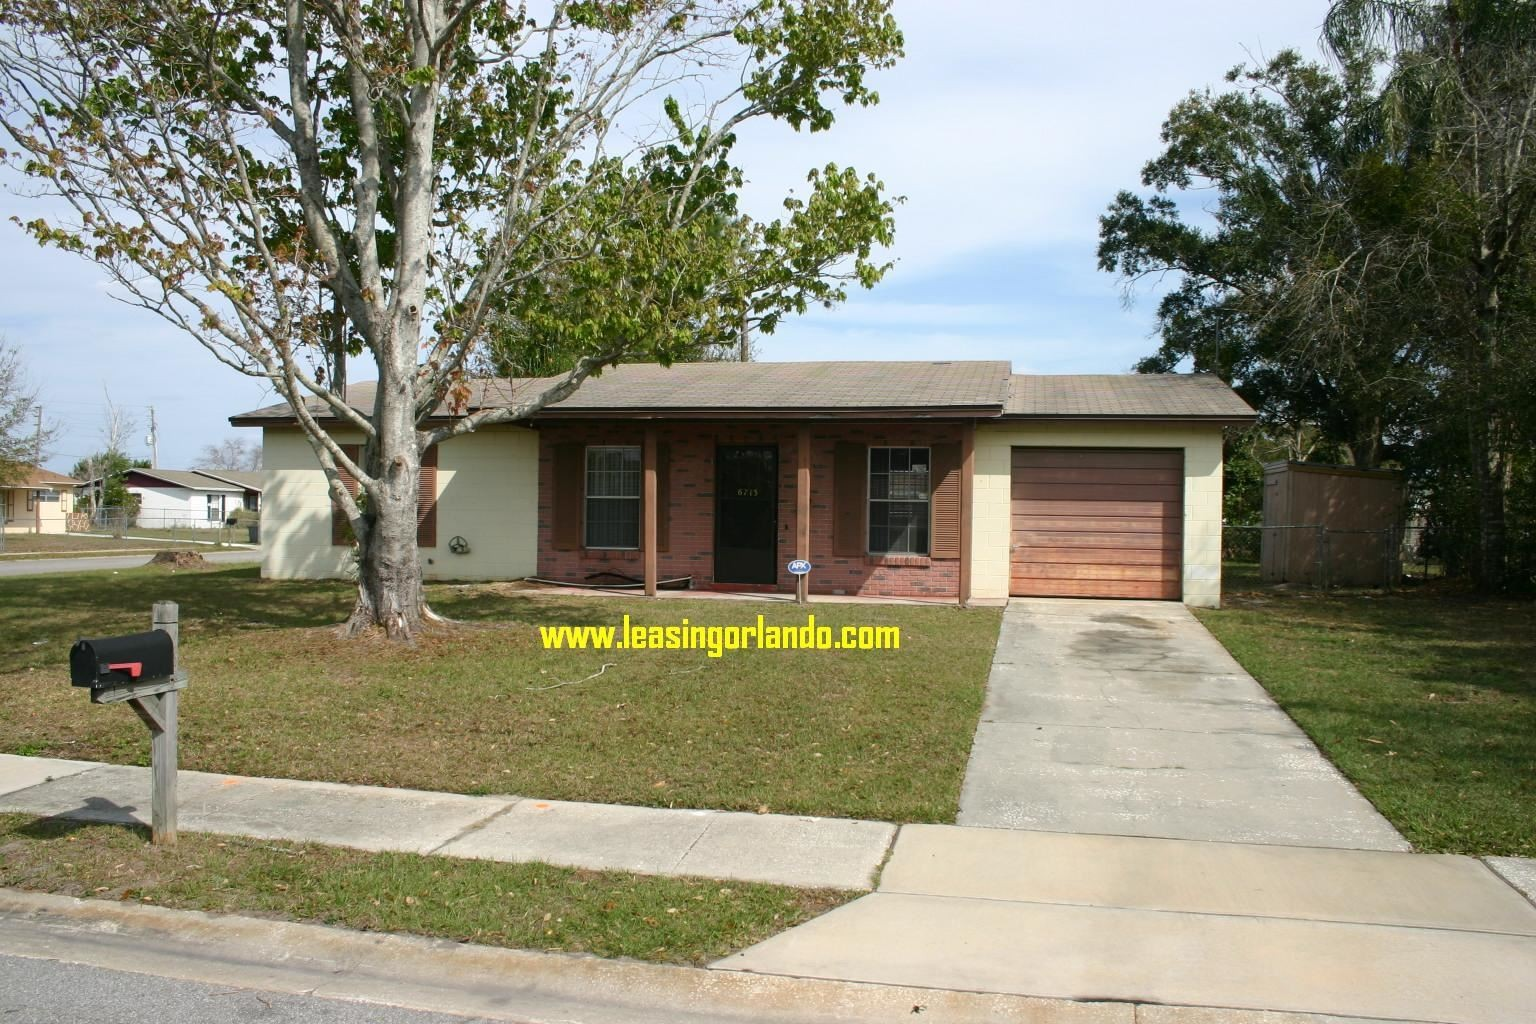 6713 Lodge Ave Orlando Fl 32809 3 Bedroom House For Rent For 900 Month Zumper